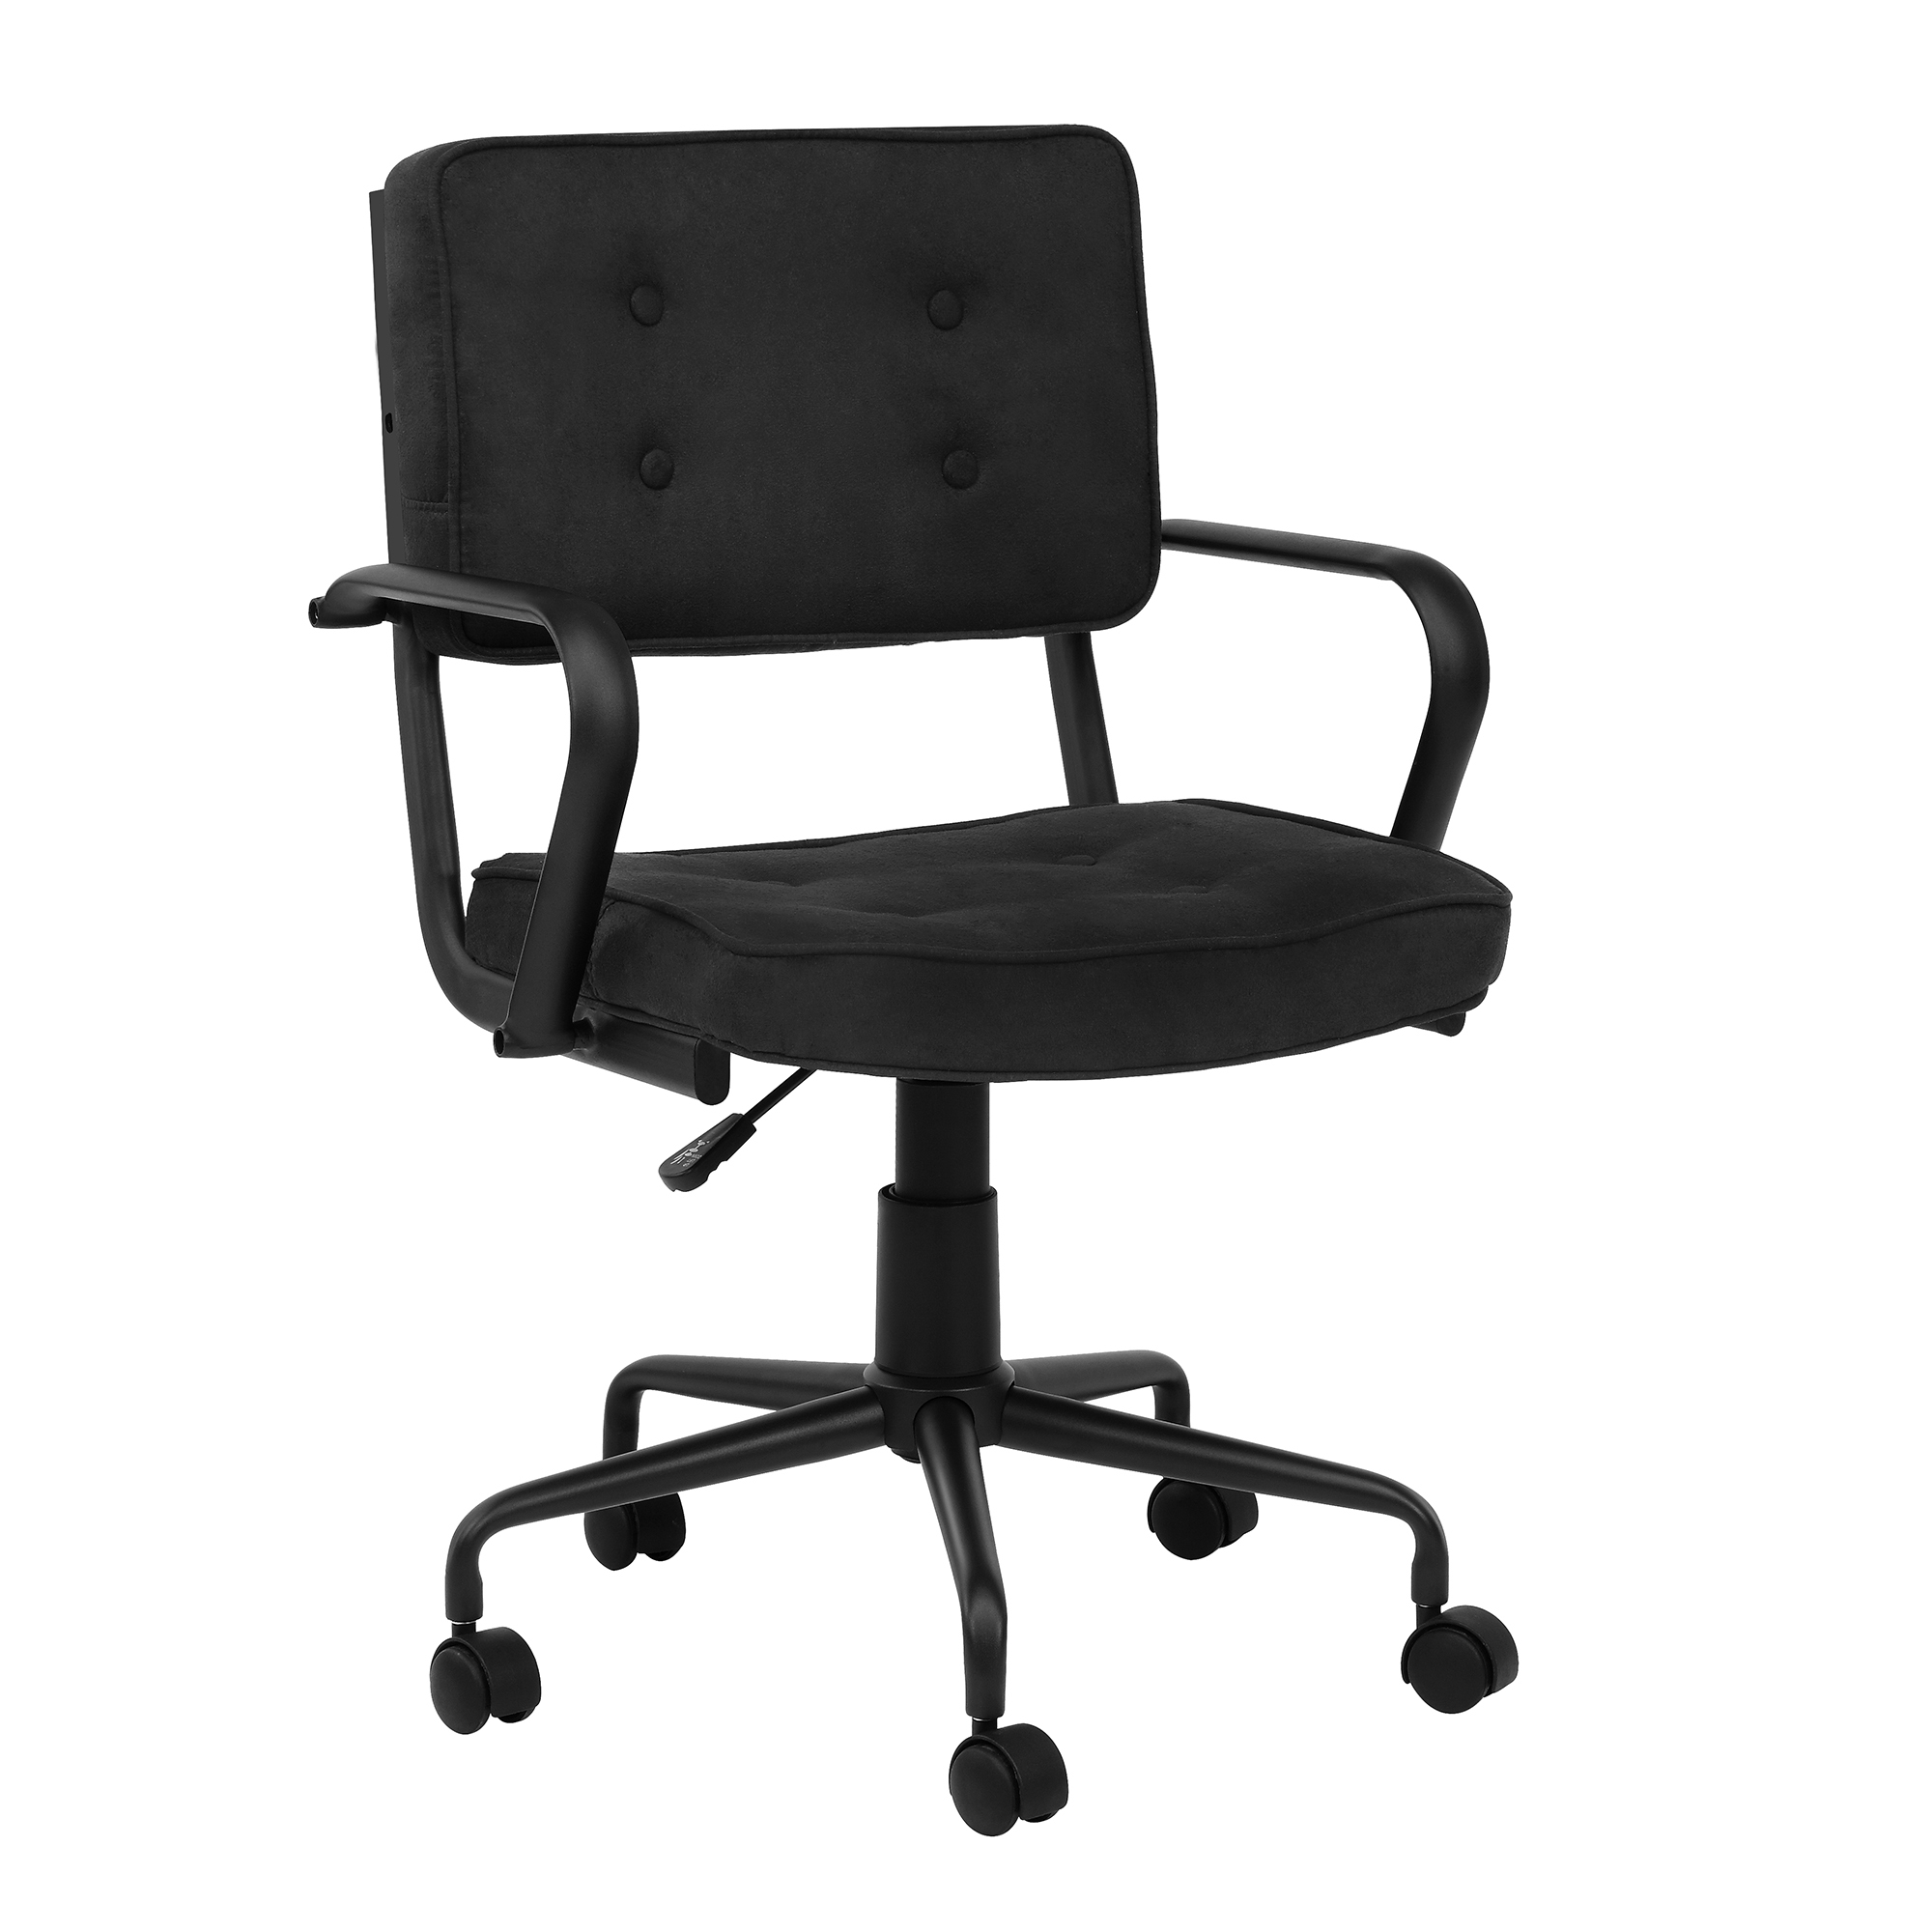 New Hugo Retro Home Office Chair Milan Direct Office Chairs Ebay